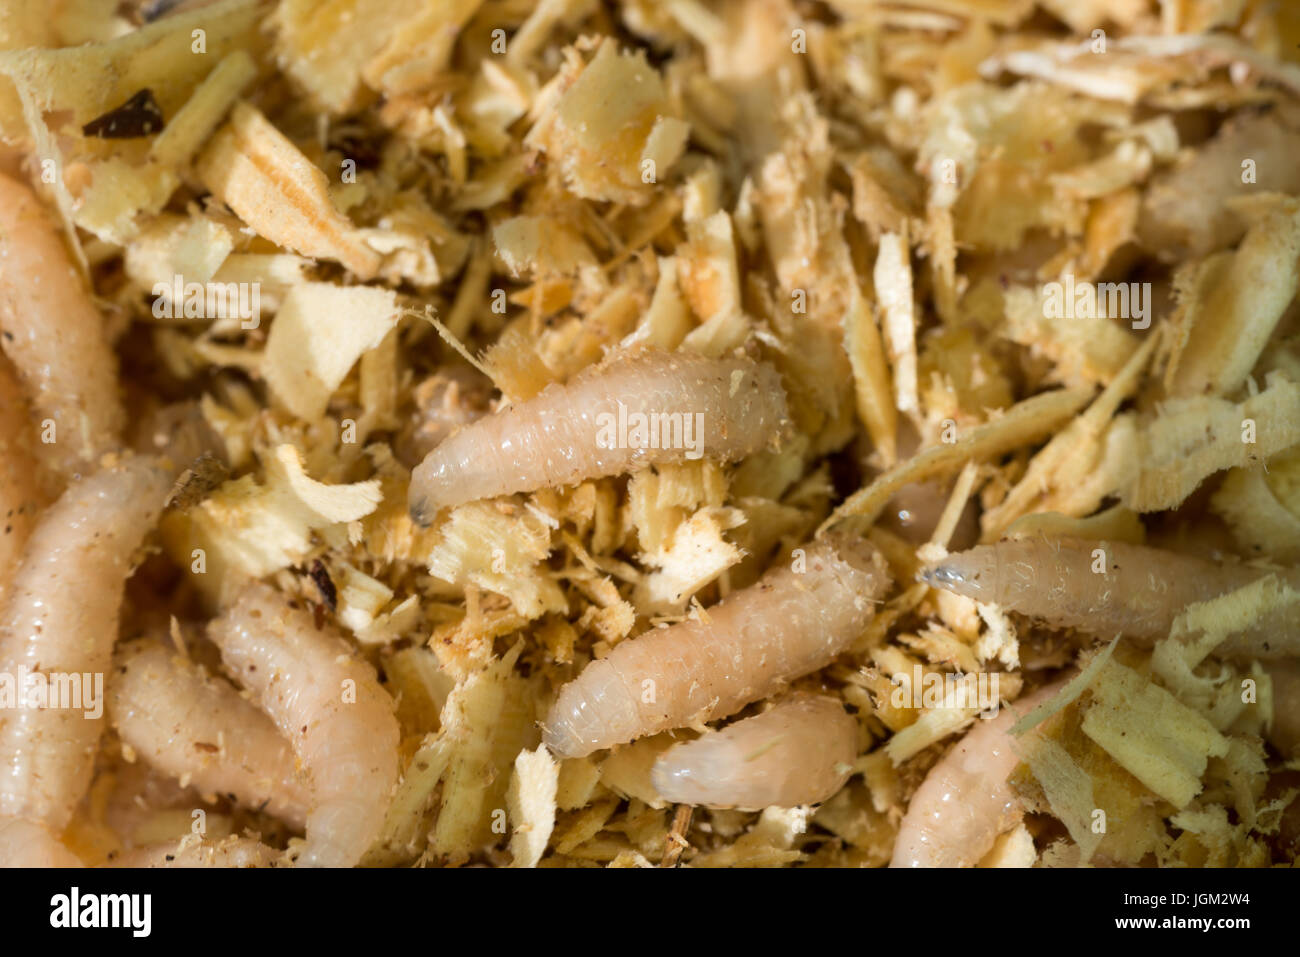 Creeping larvae of the white fly are used as bait on fishing Stock Photo